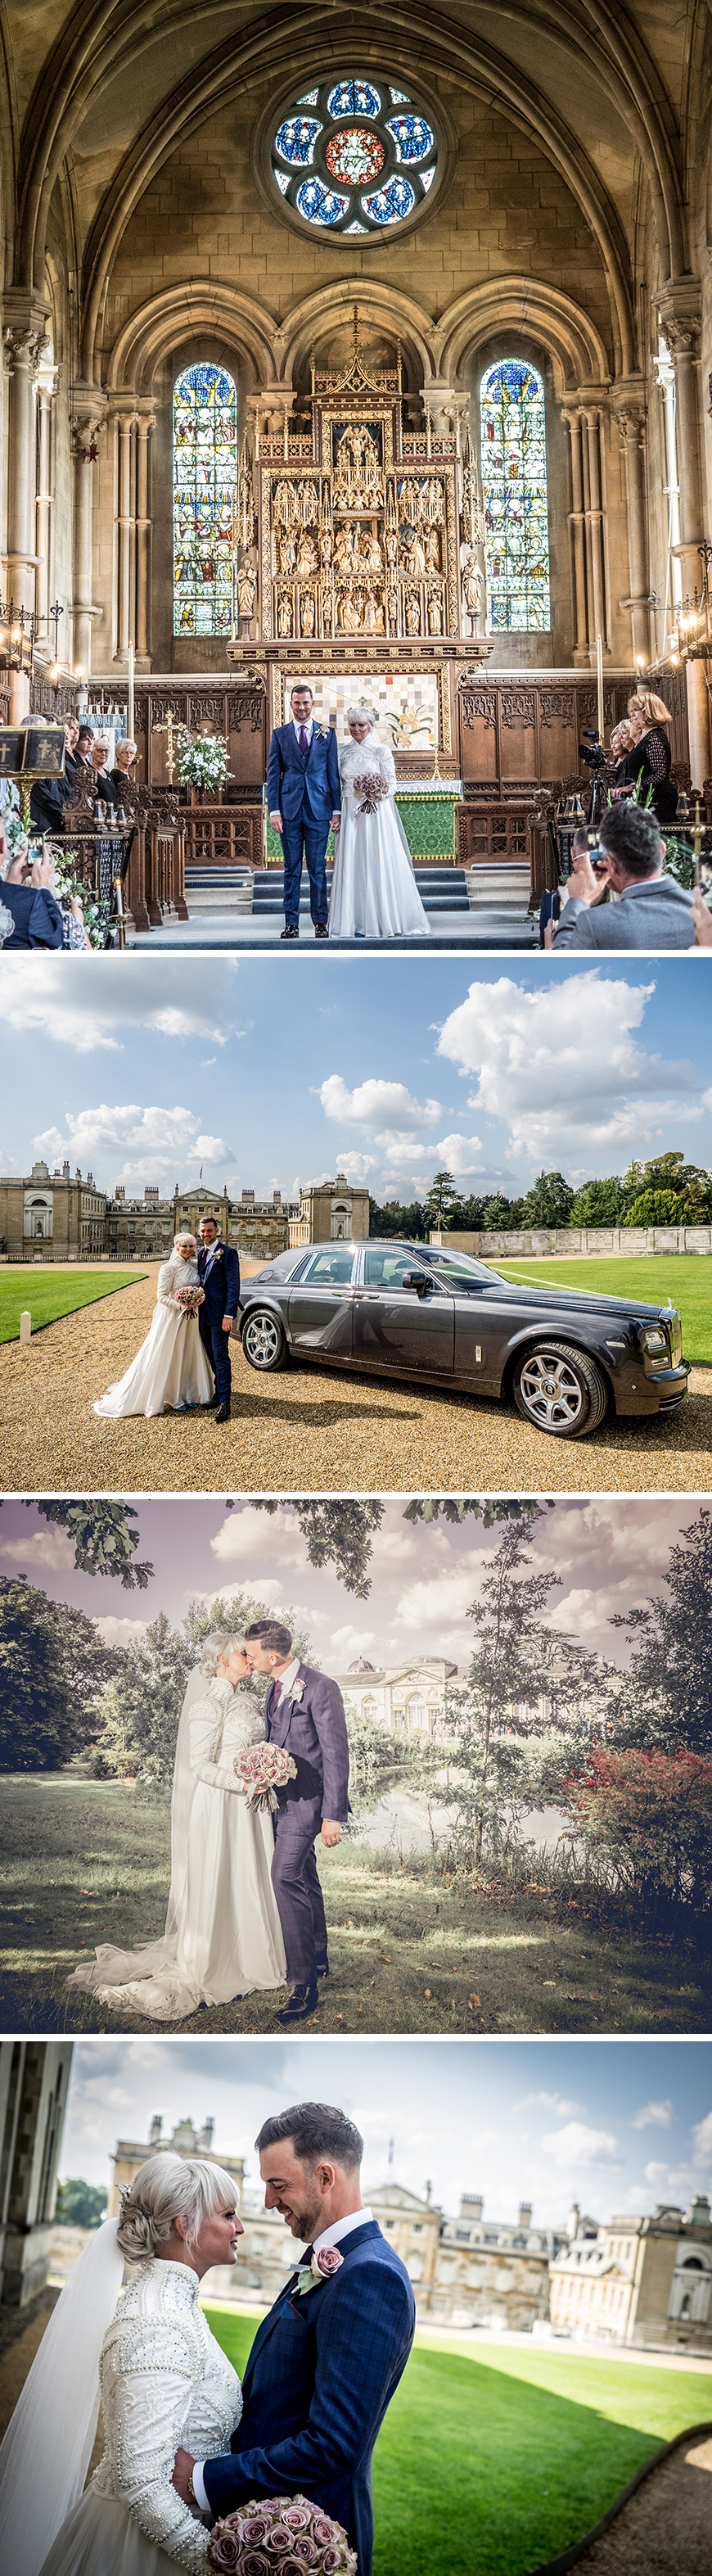 Real Wedding - Emma and James' Grand Wedding At Woburn Abbey | CHWV